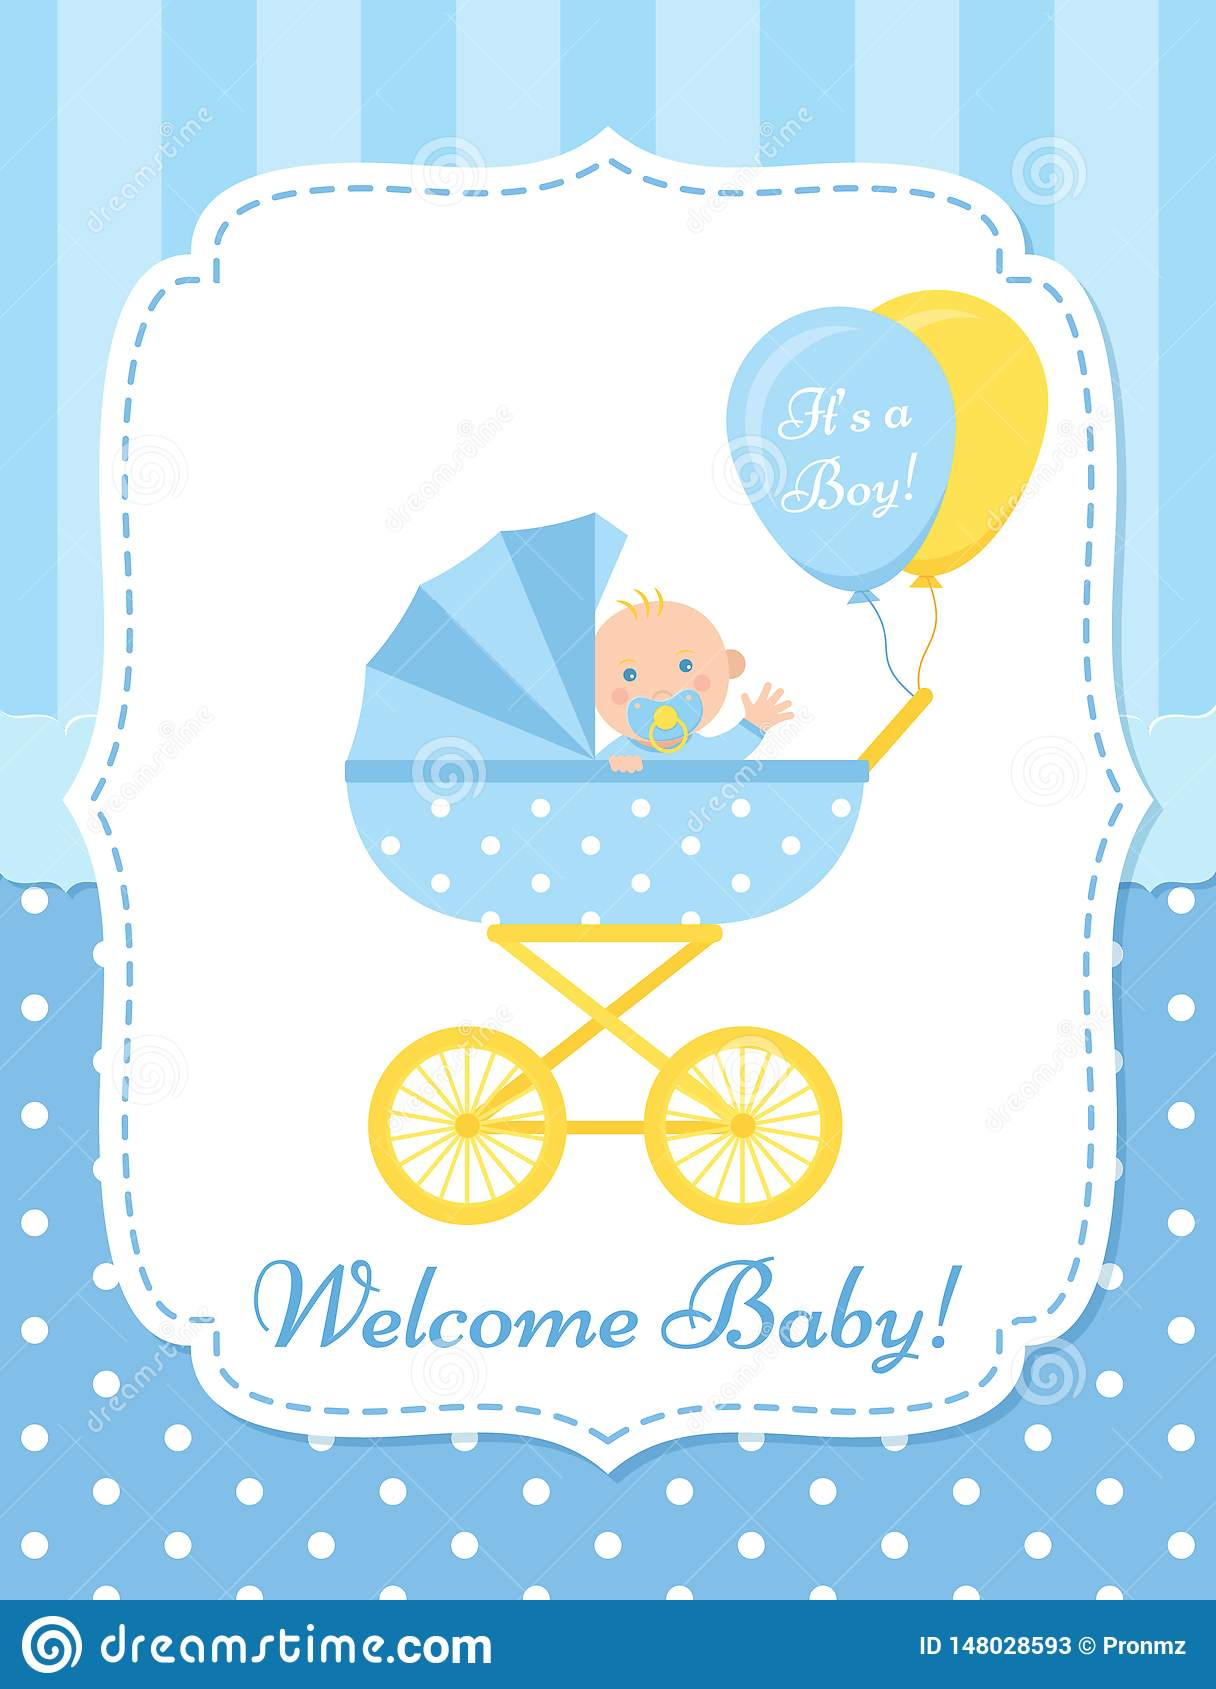 Baby Shower Card Design Vector Illustration Birthday Template